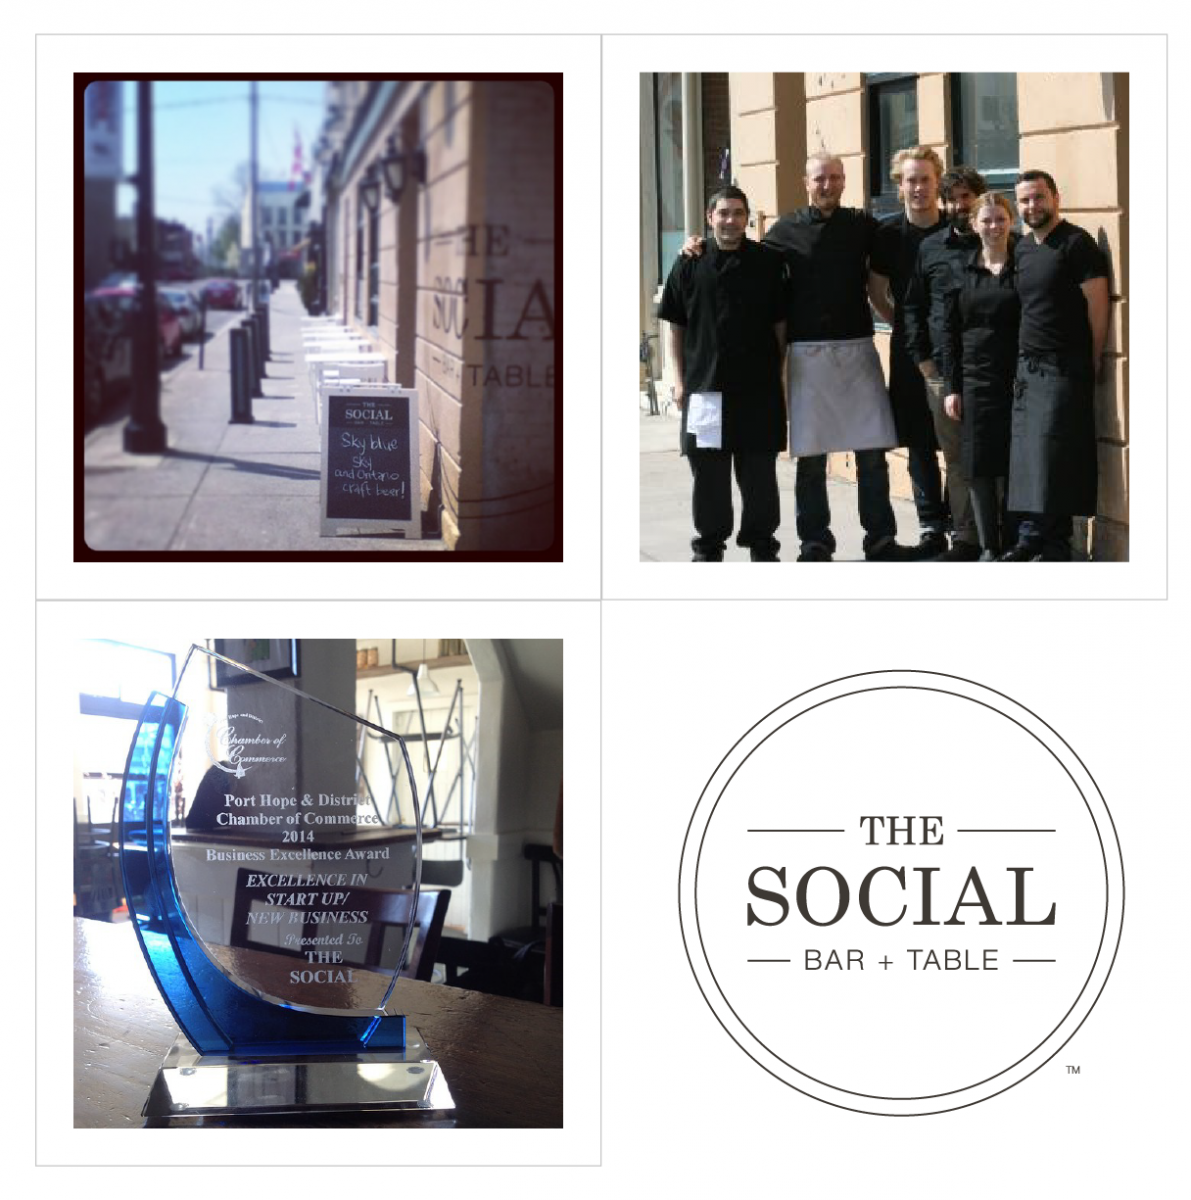 The Social Bar + Table, Port Hope, Ontario - Chamber of Commerce Business Excellence Award and The Social won the award for Excellence as a Start Up/New Business and Happy First Anniversary